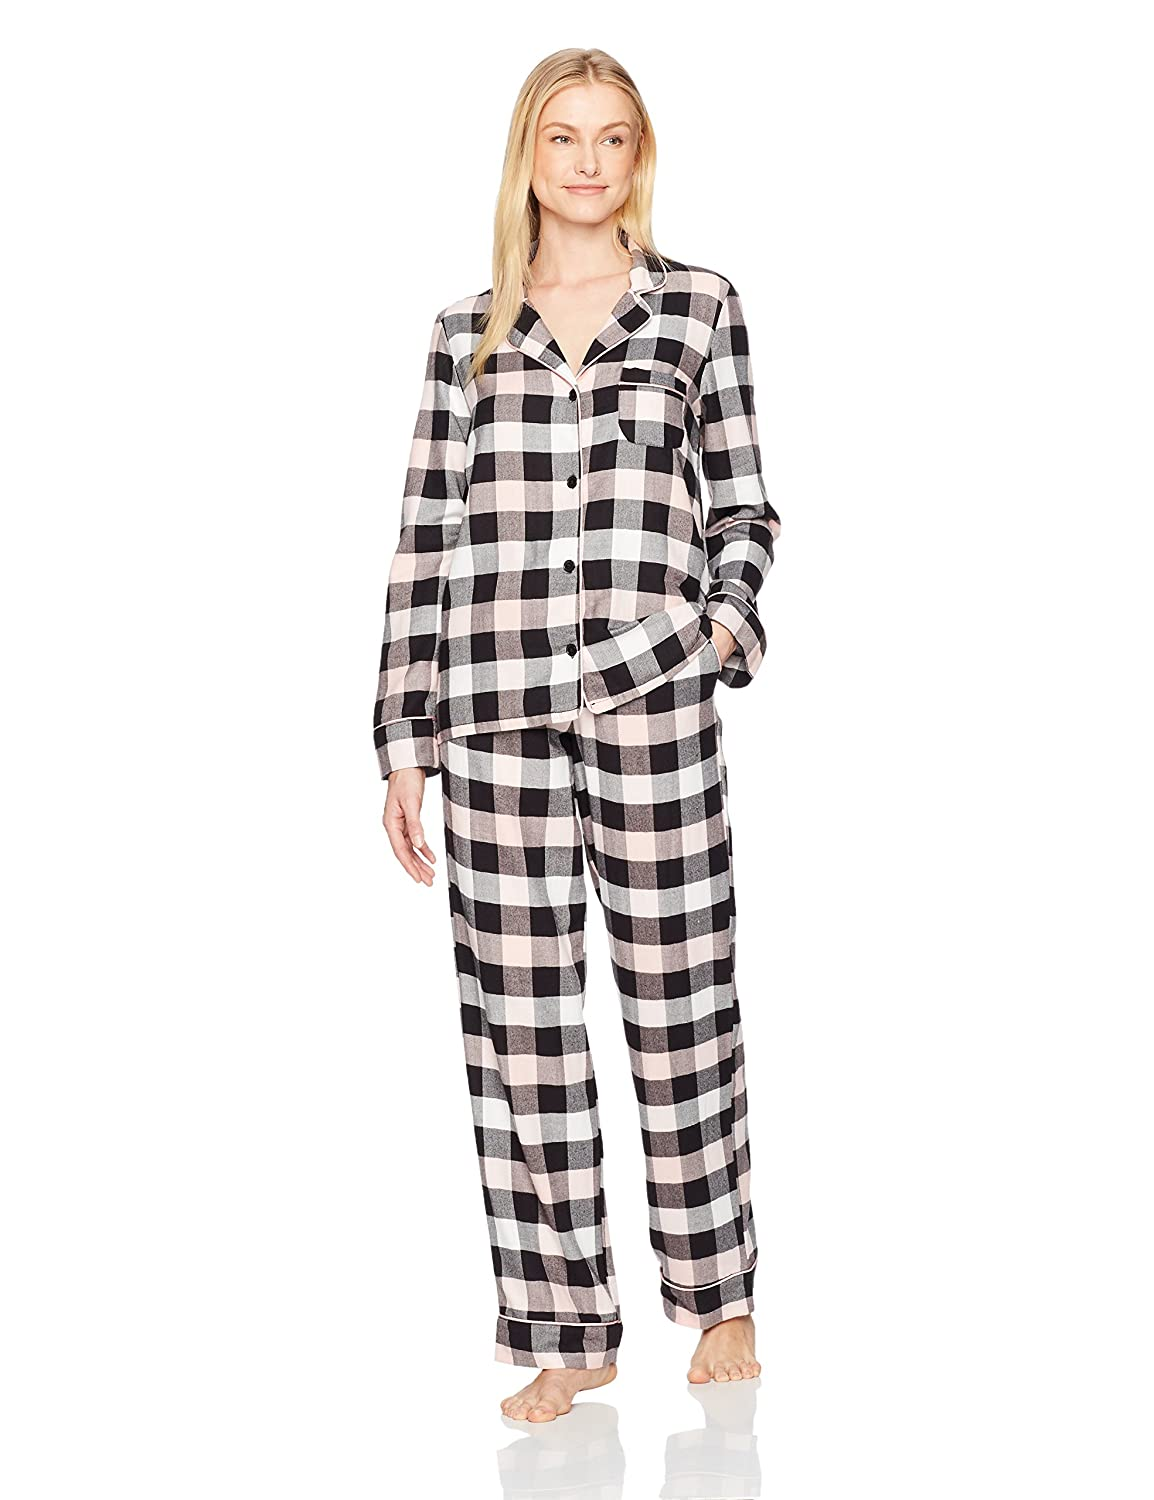 Mae Women's Sleepwear Cozy Flannel Notch Collar Pajama Set CIKHU 1591464